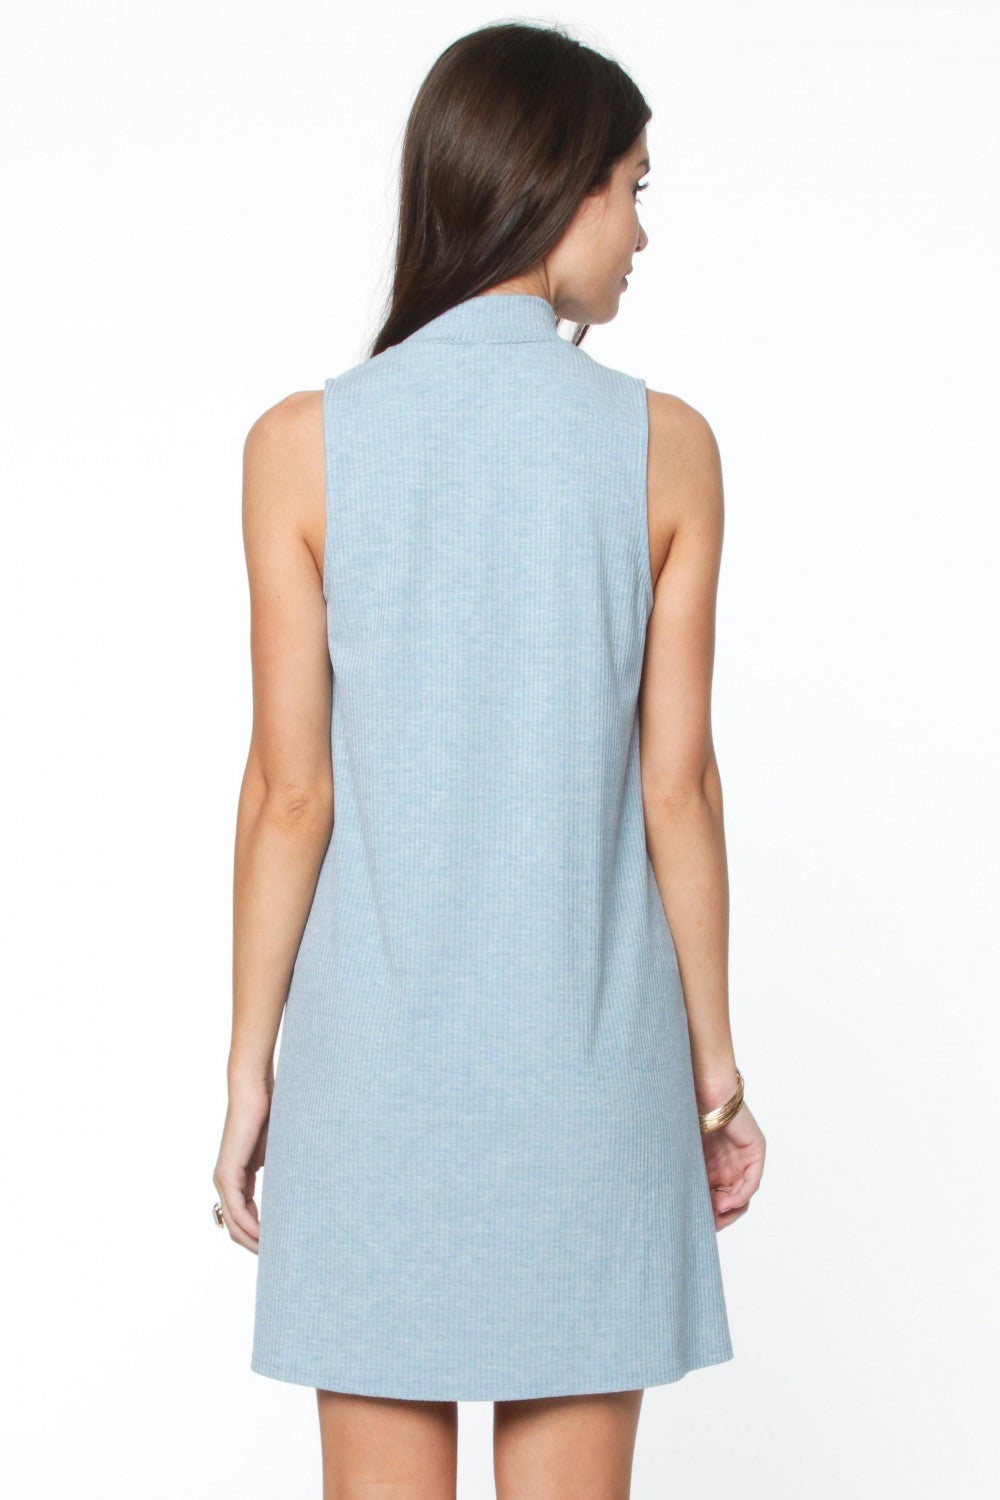 Shelia Blue Choker Dress